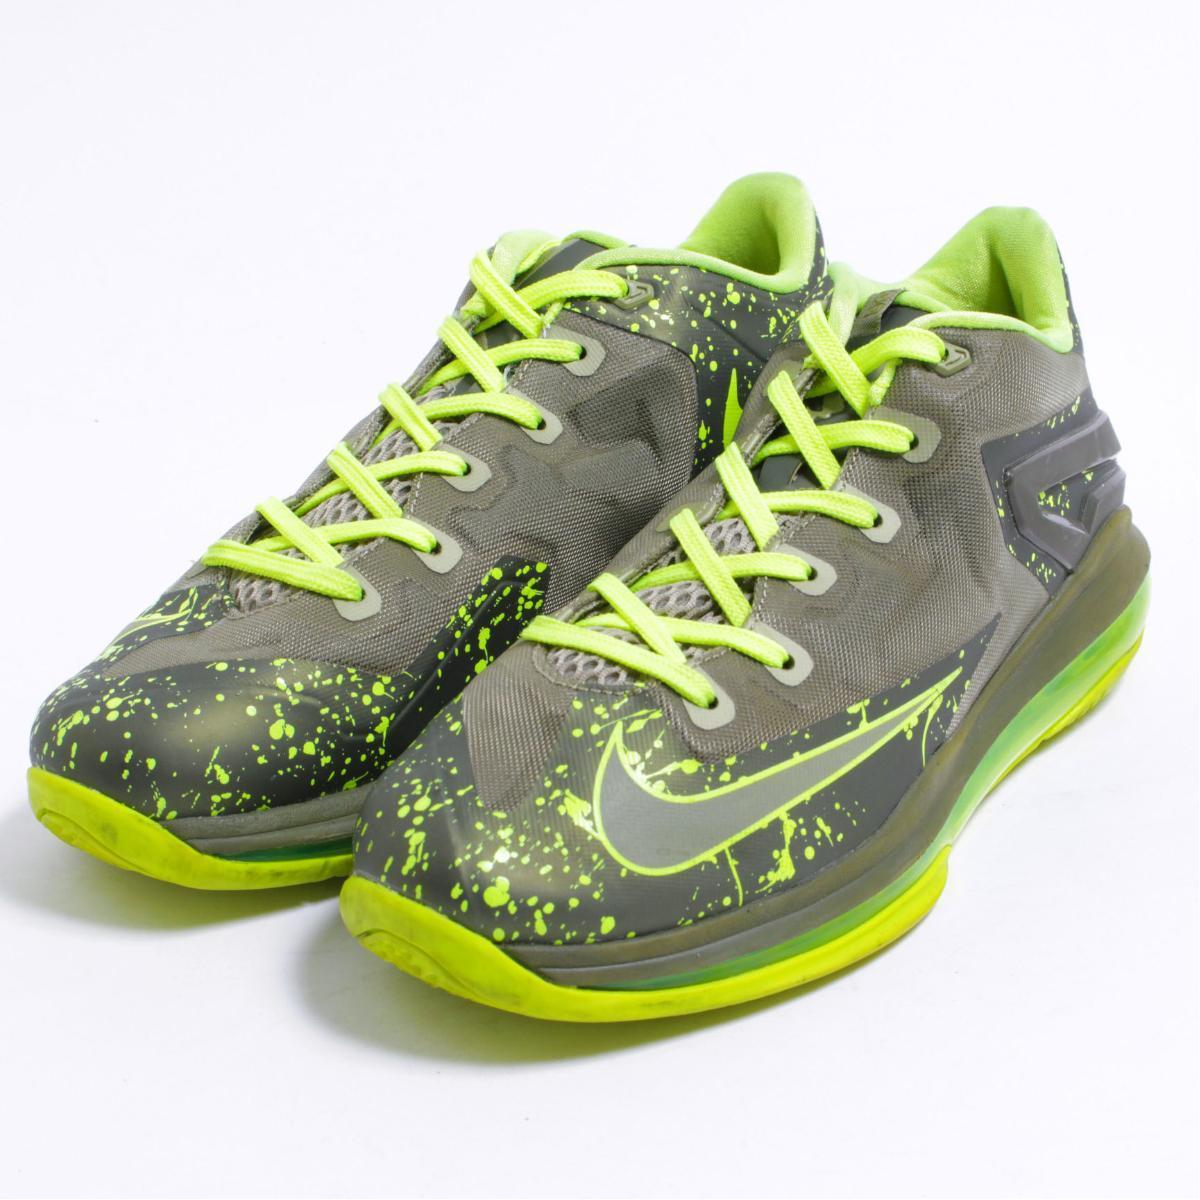 c84d0254be1d VINTAGE CLOTHING JAM  Nike NIKE LEBRON XI MAX LOW sneakers US6.5Y ...